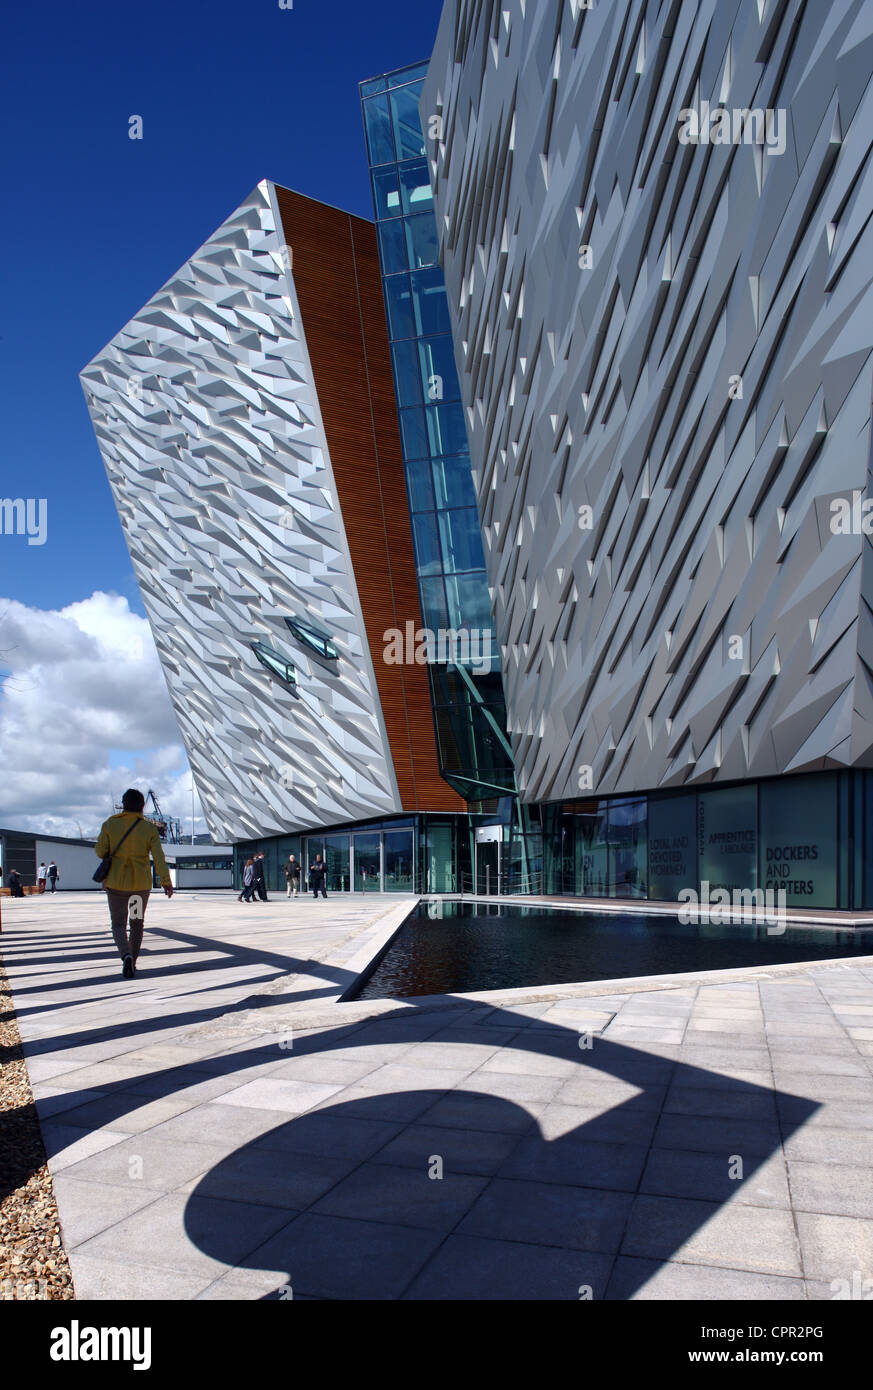 Visitors entering Titanic Belfast Signature Project - Stock Image